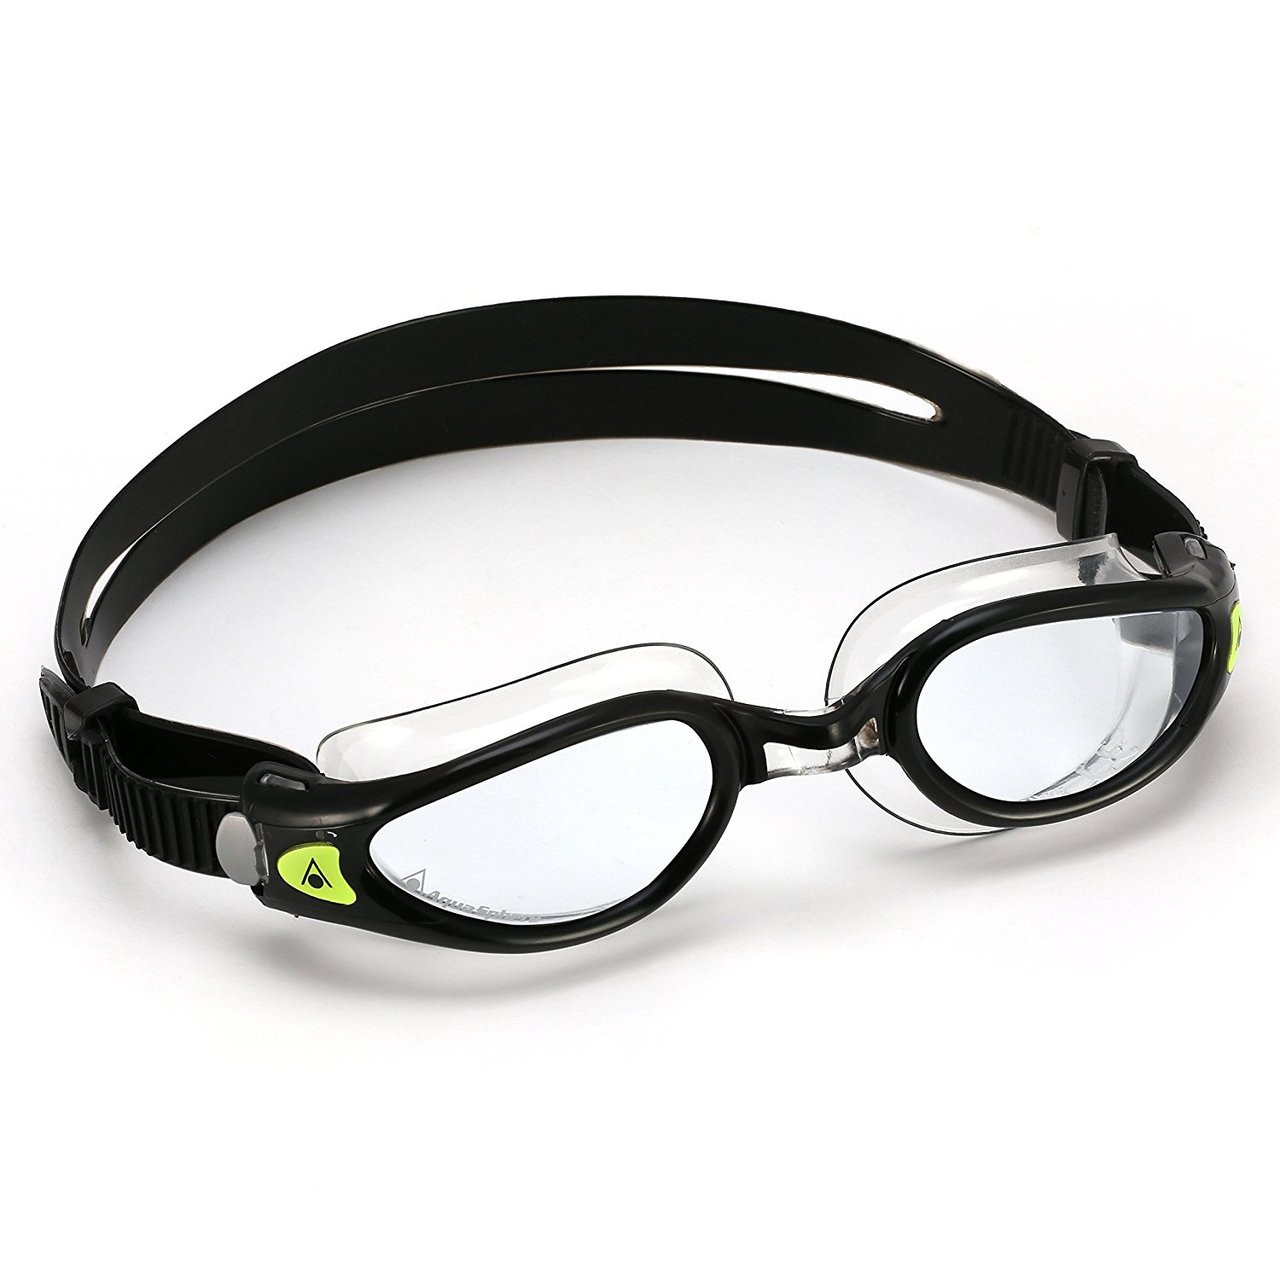 best prices best quality super specials Buy Aqua Sphere Kaiman EXO Goggle with Clear Lens for ...